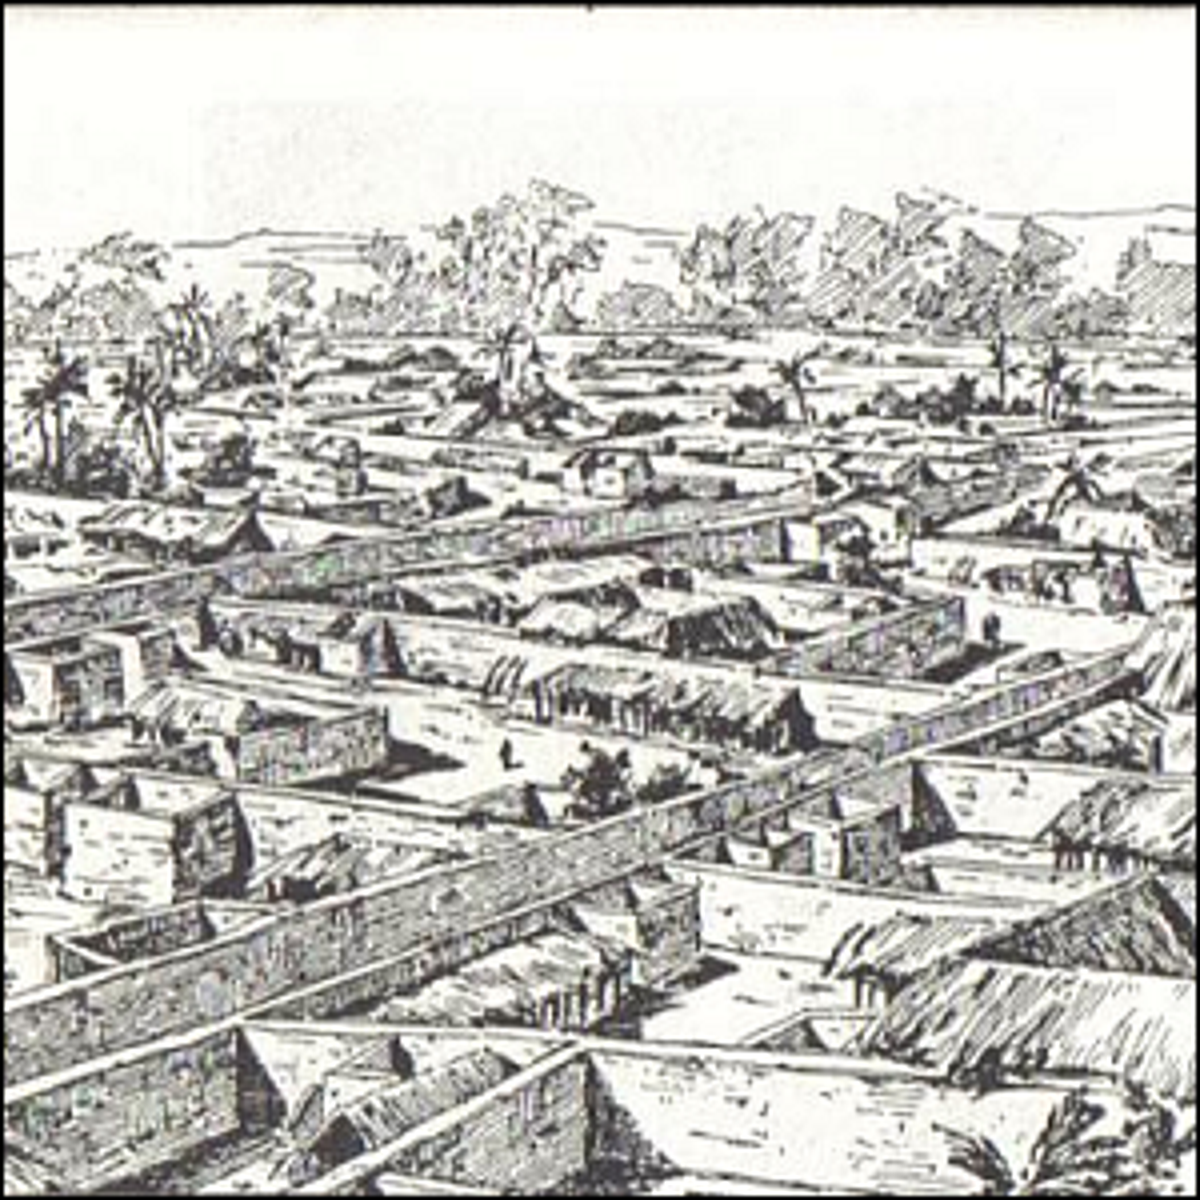 A drawing of Benin City made by an English officer in 1897.